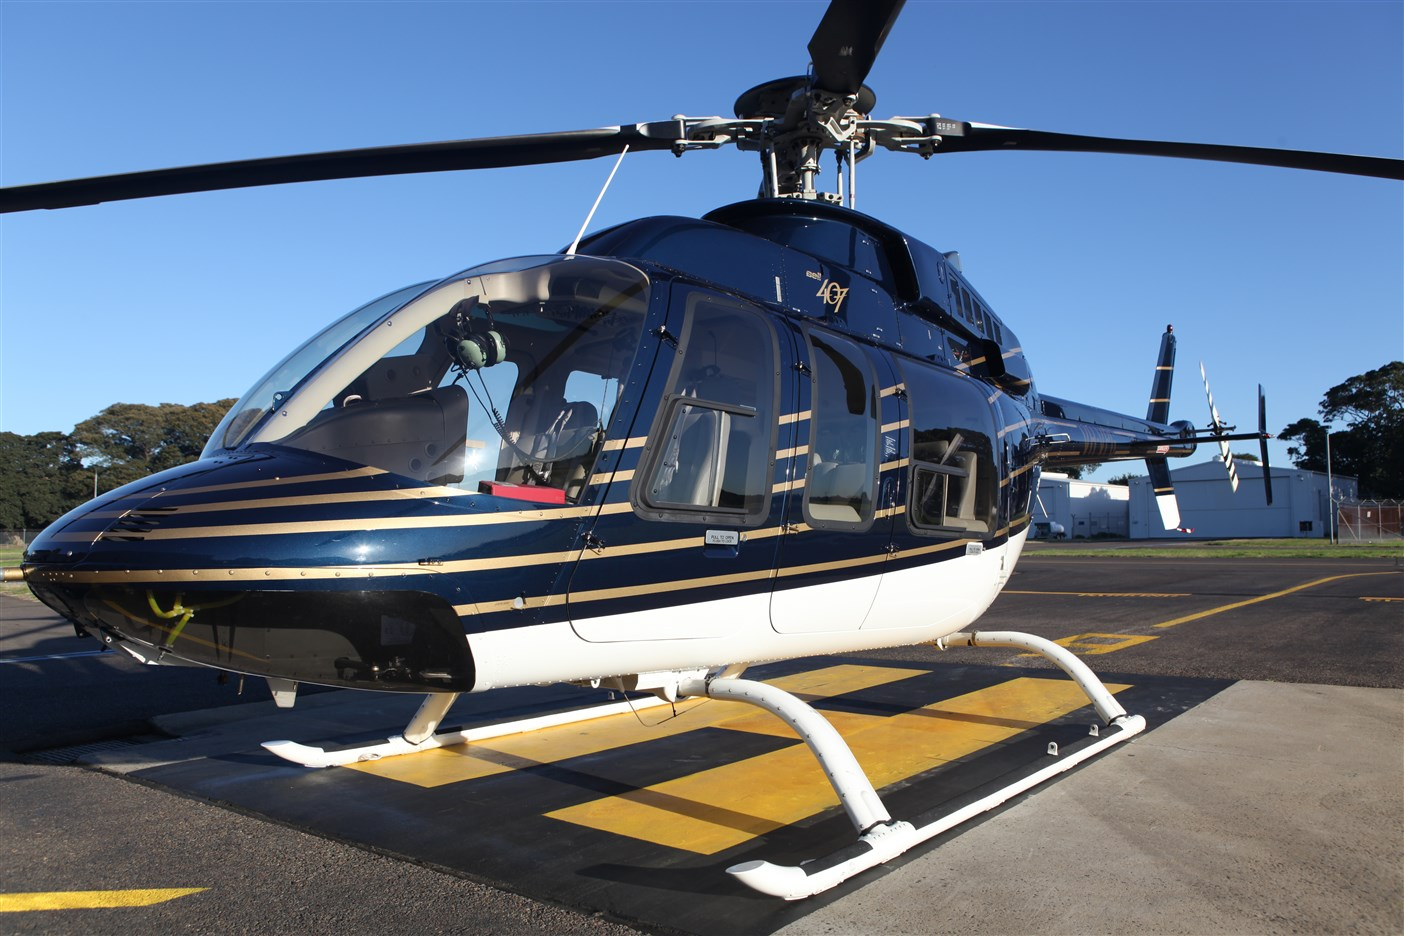 private scenic flights over Sydney Harbour in luxury helicopter